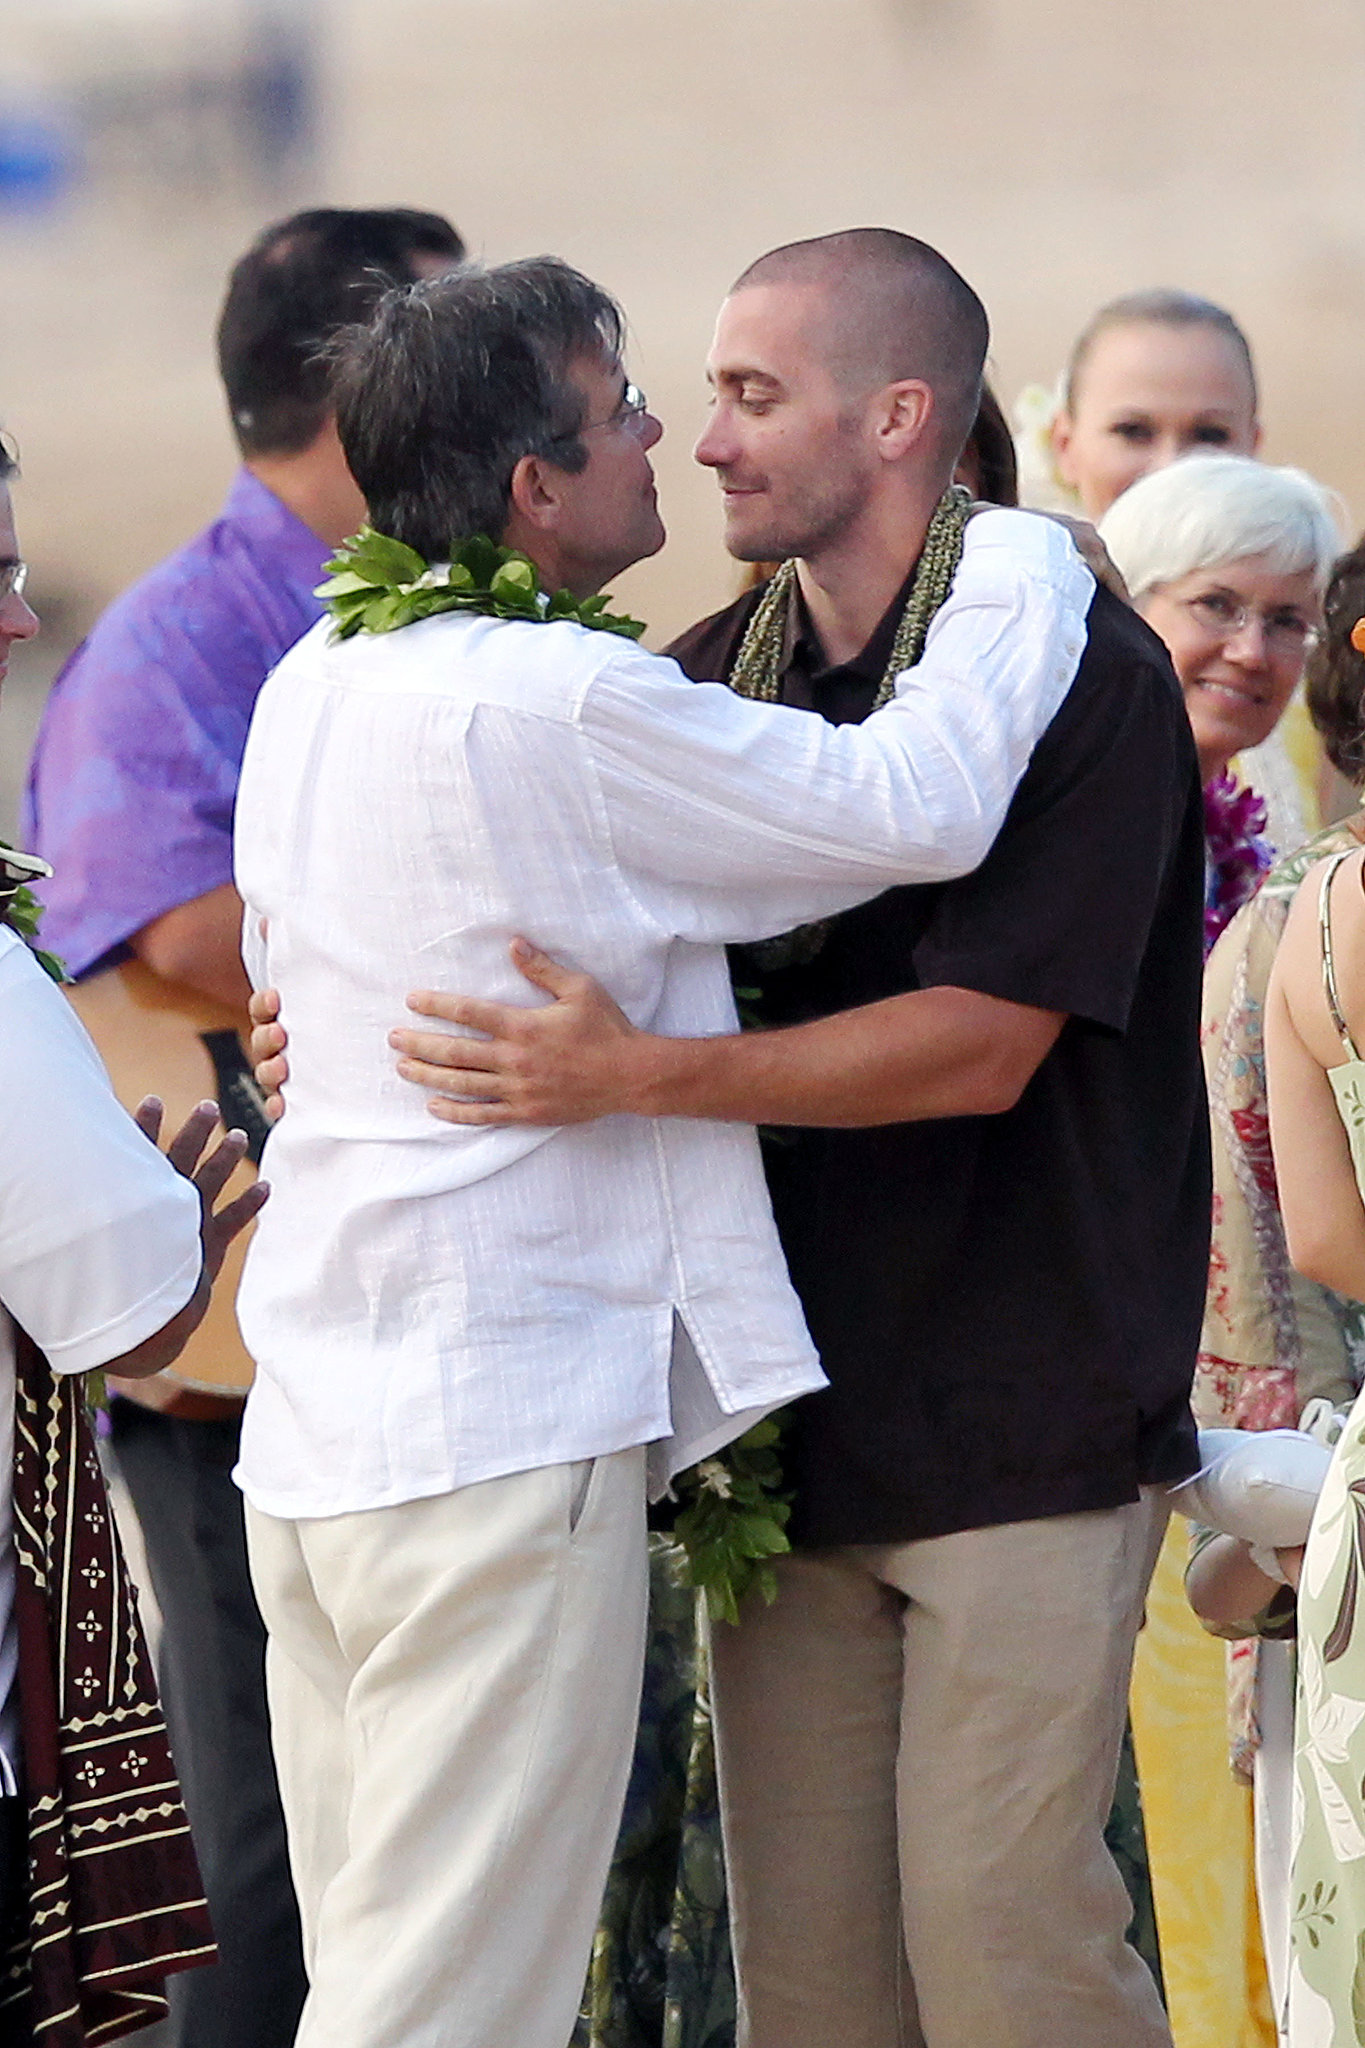 Jake Gyllenhaal hugged his dad, Stephen Gyllenhaal, at his father's Hawaiian wedding in July 2011.